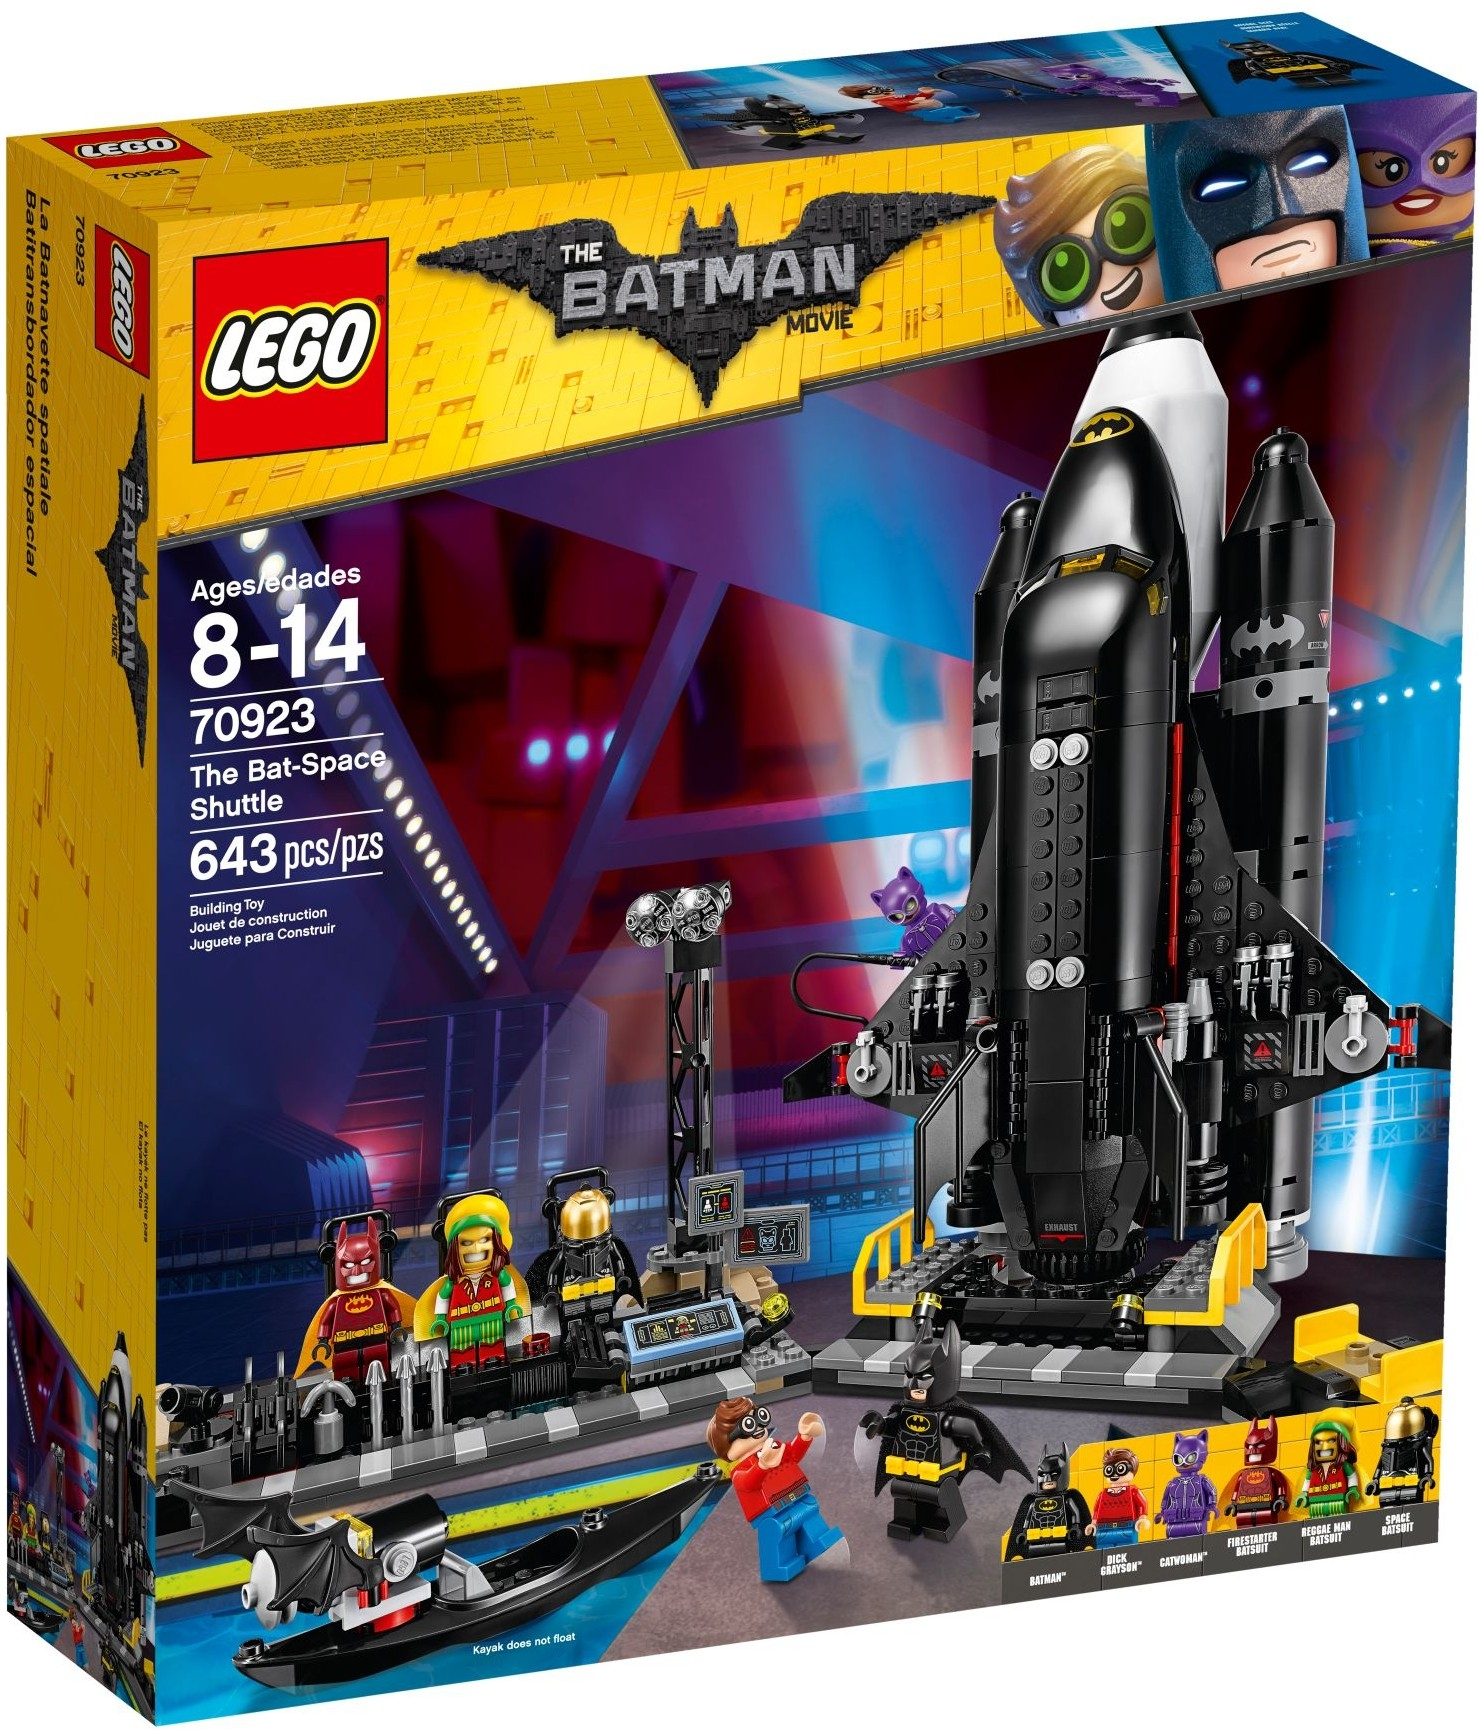 LEGO Batman Movie 70923 The Bat-Space Shuttle